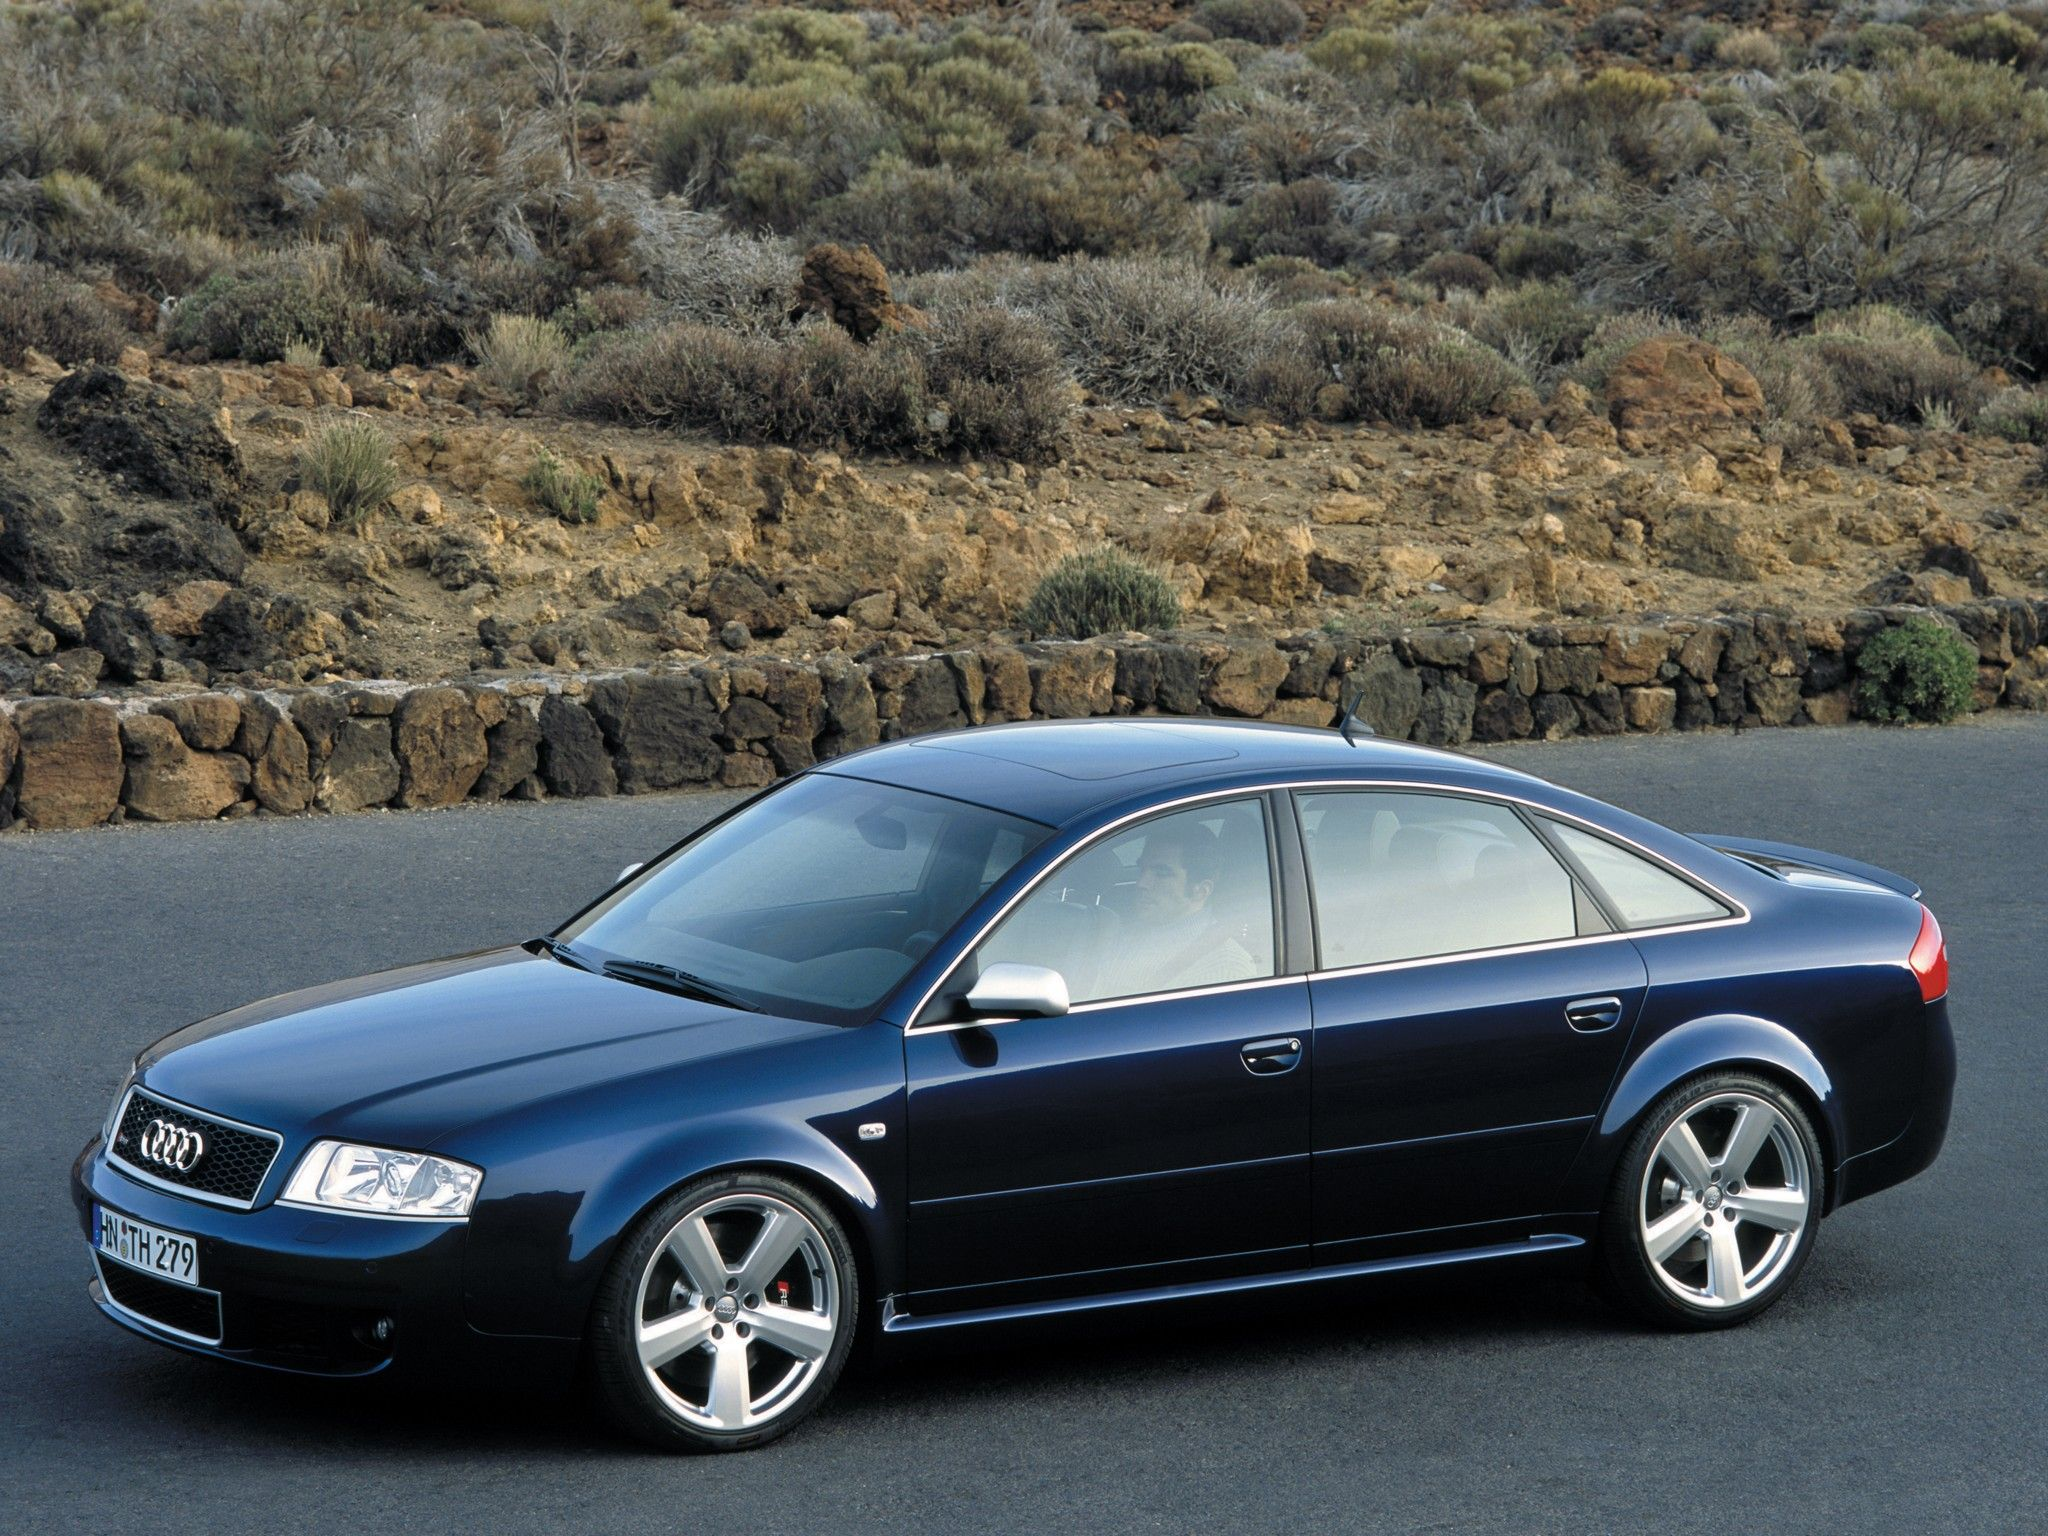 2002 audi rs6 sedan audi rs 6 wikipedia the free encyclopedia 2002 audi rs6 c5